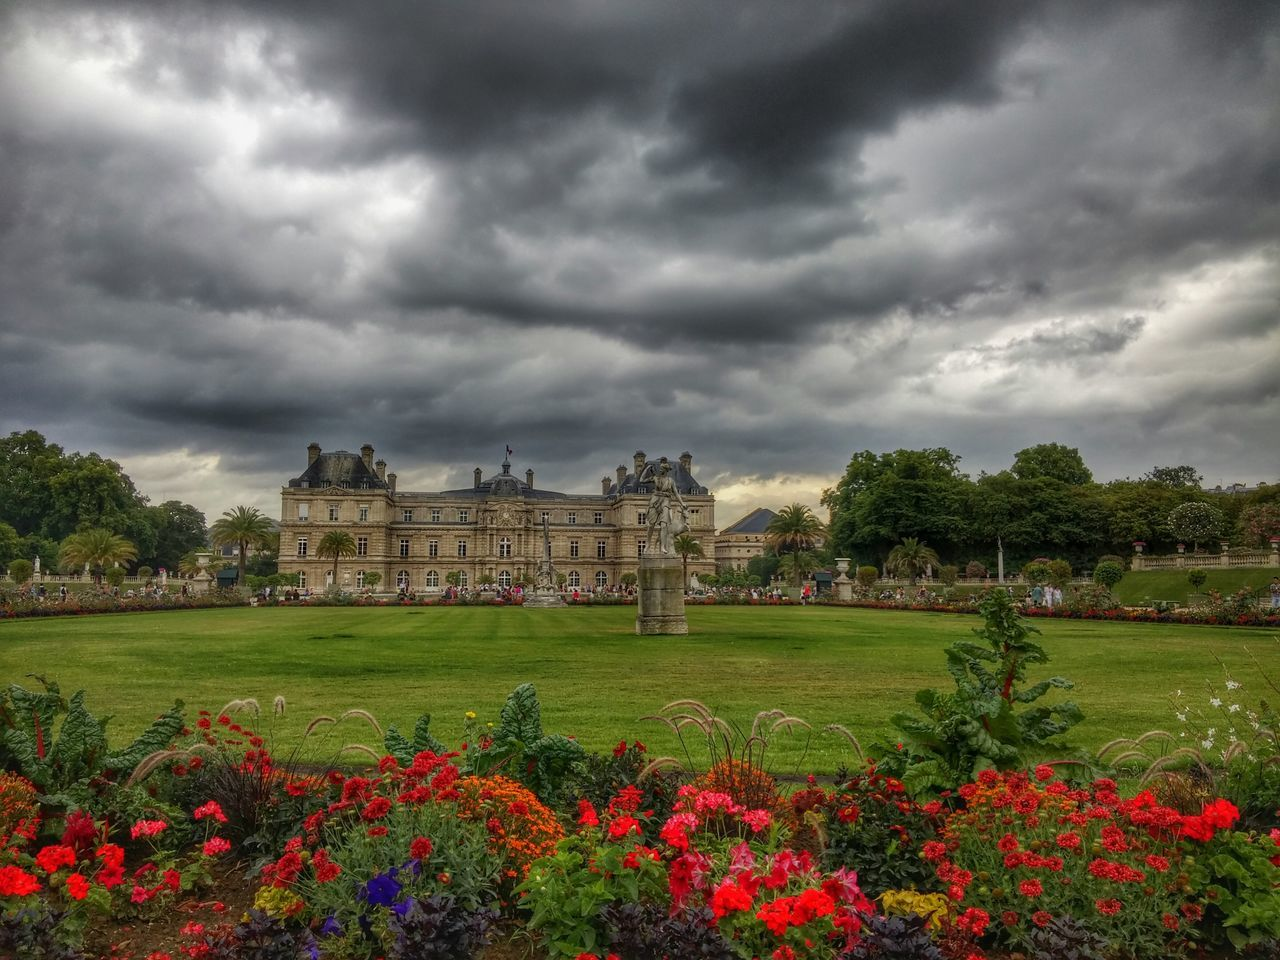 Flower Architecture Nature Outdoors Travel Destinations Built Structure Grass Tranquility No People Building Exterior Cloud - Sky Flowerbed Storm Cloud Cityscape Politics And Government Day Beauty In Nature Tree City Flower Head Paris ❤ Jardin Du Luxembourg